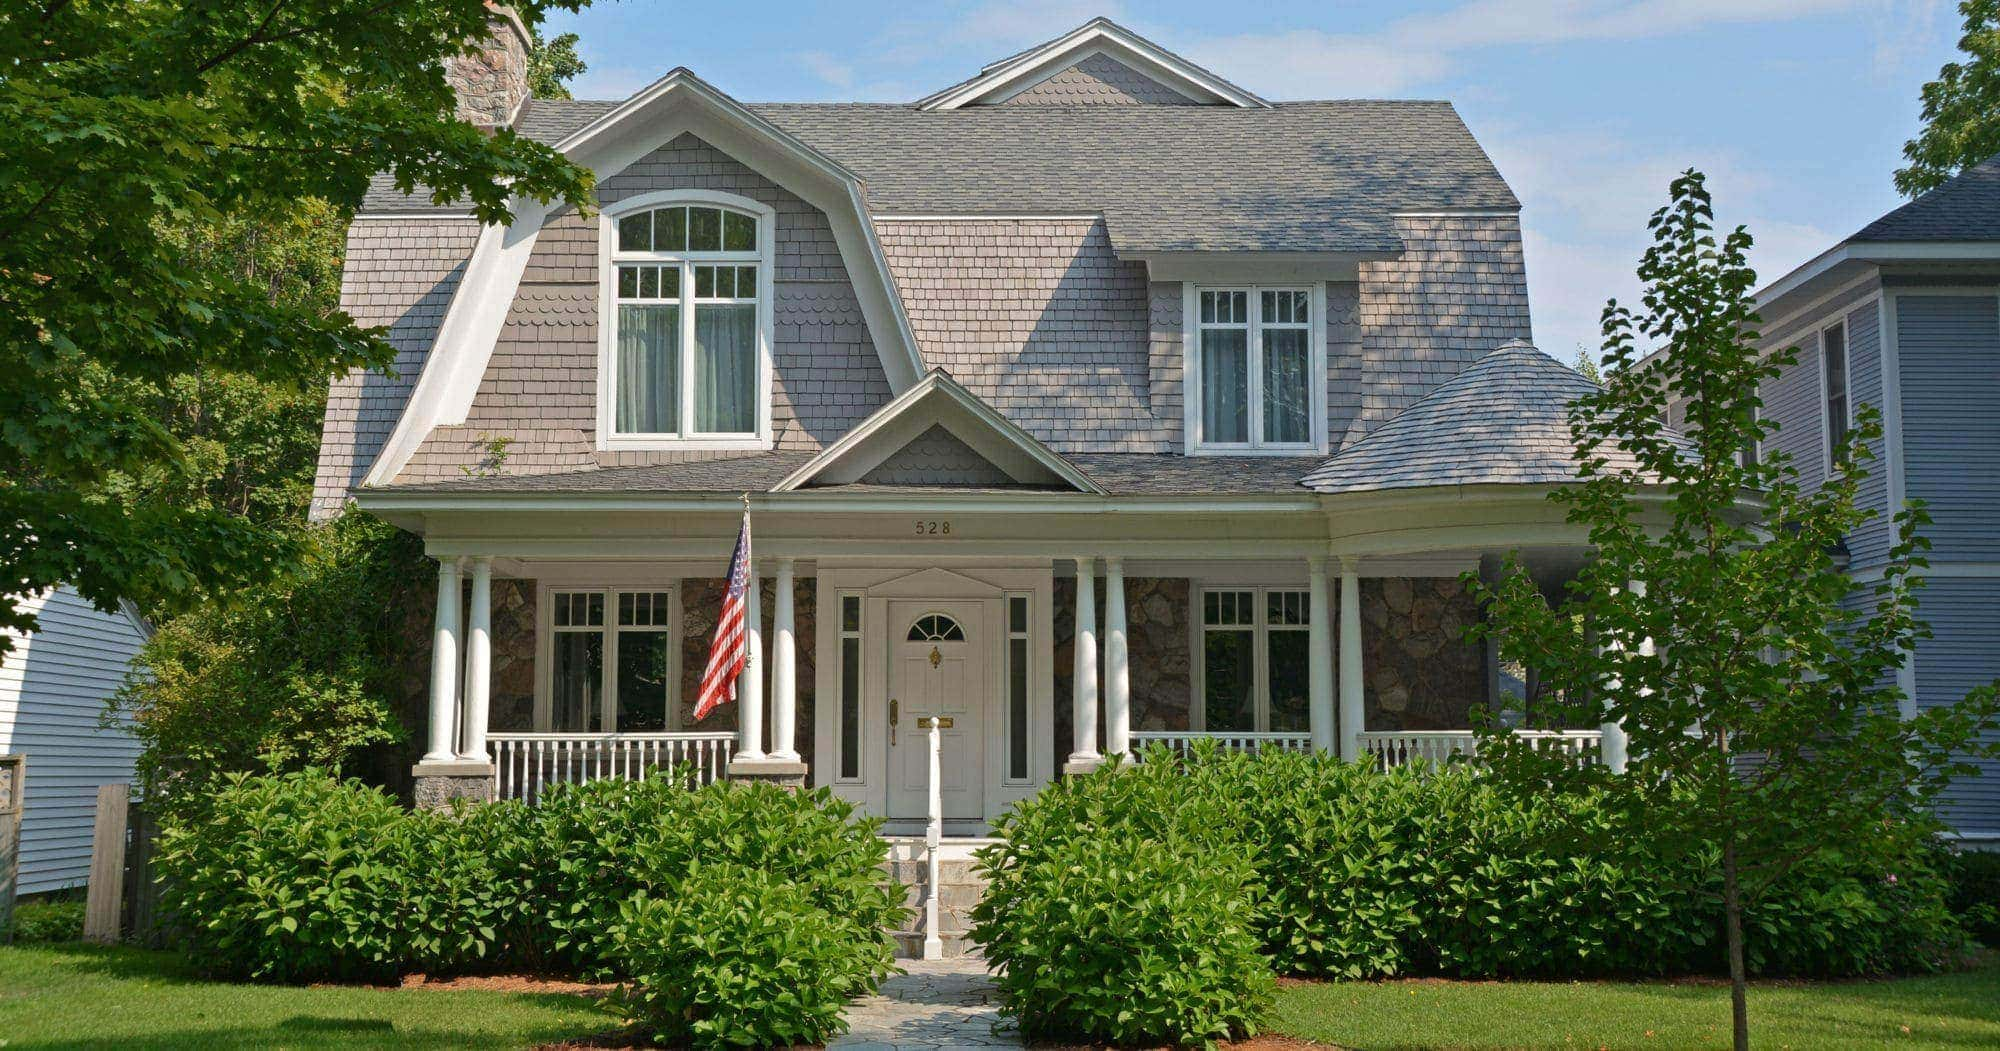 Traverse city real estate sixth street home for Craft shows in traverse city mi